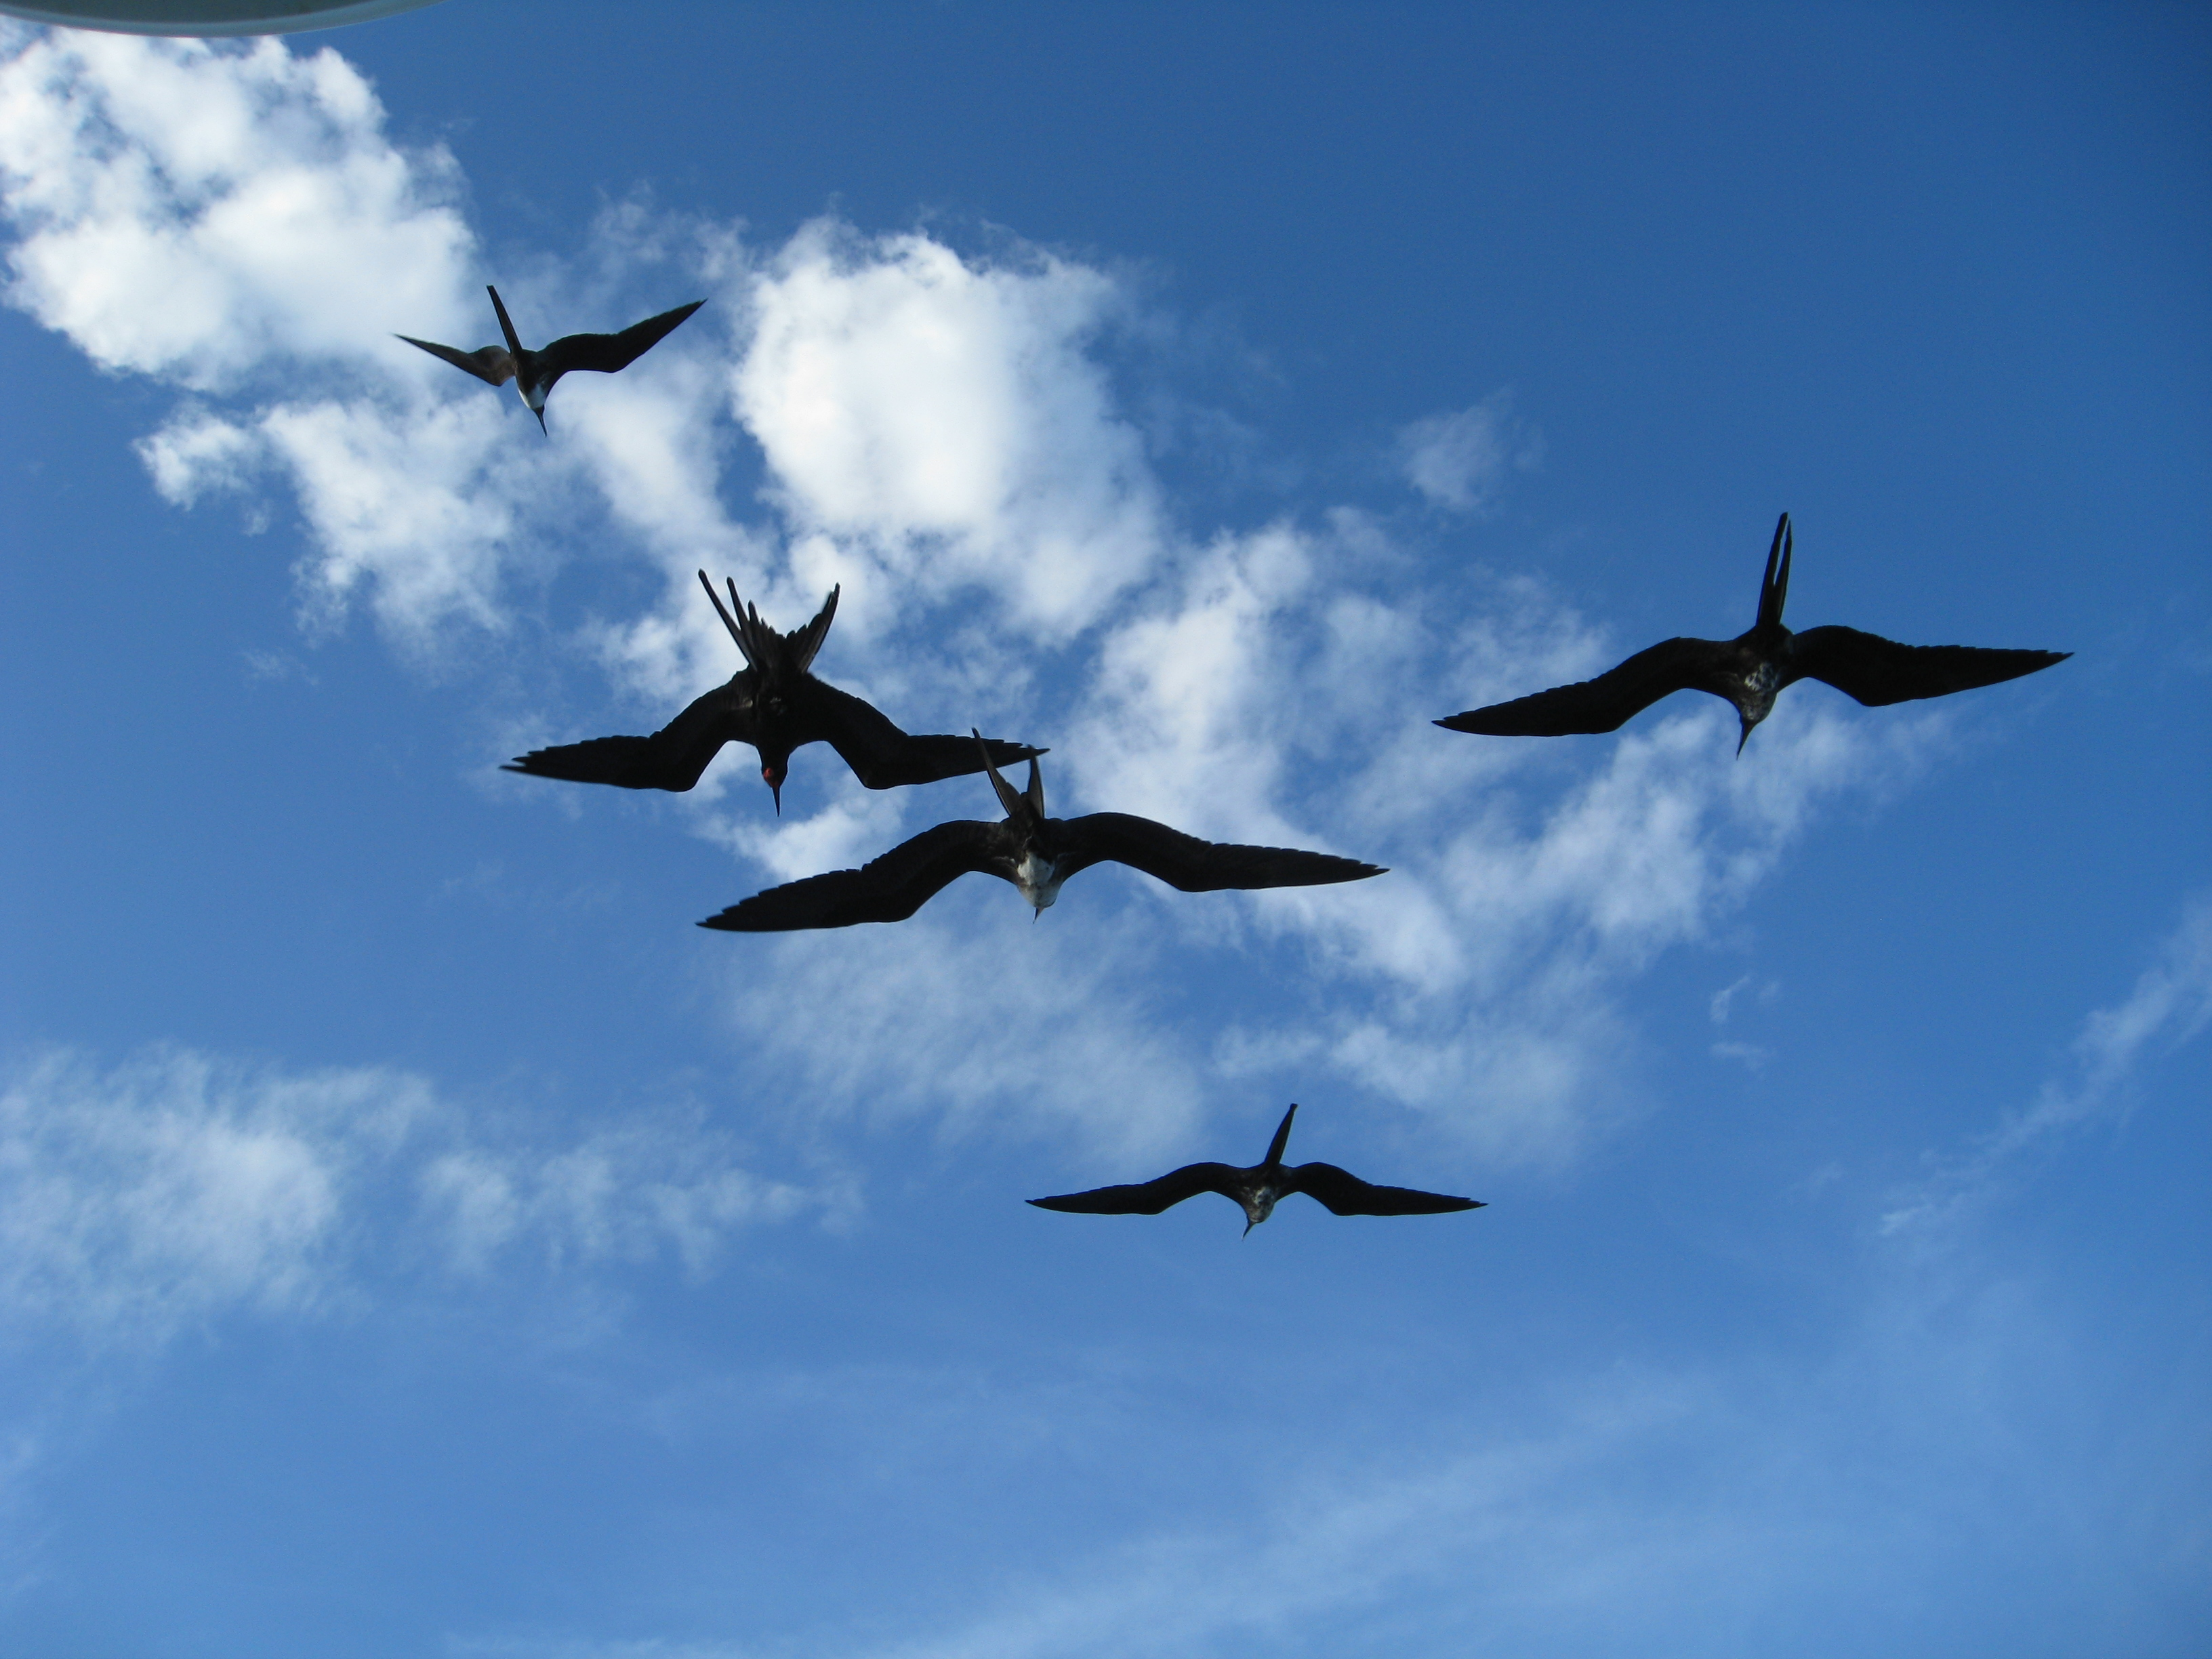 Regular frigate birds